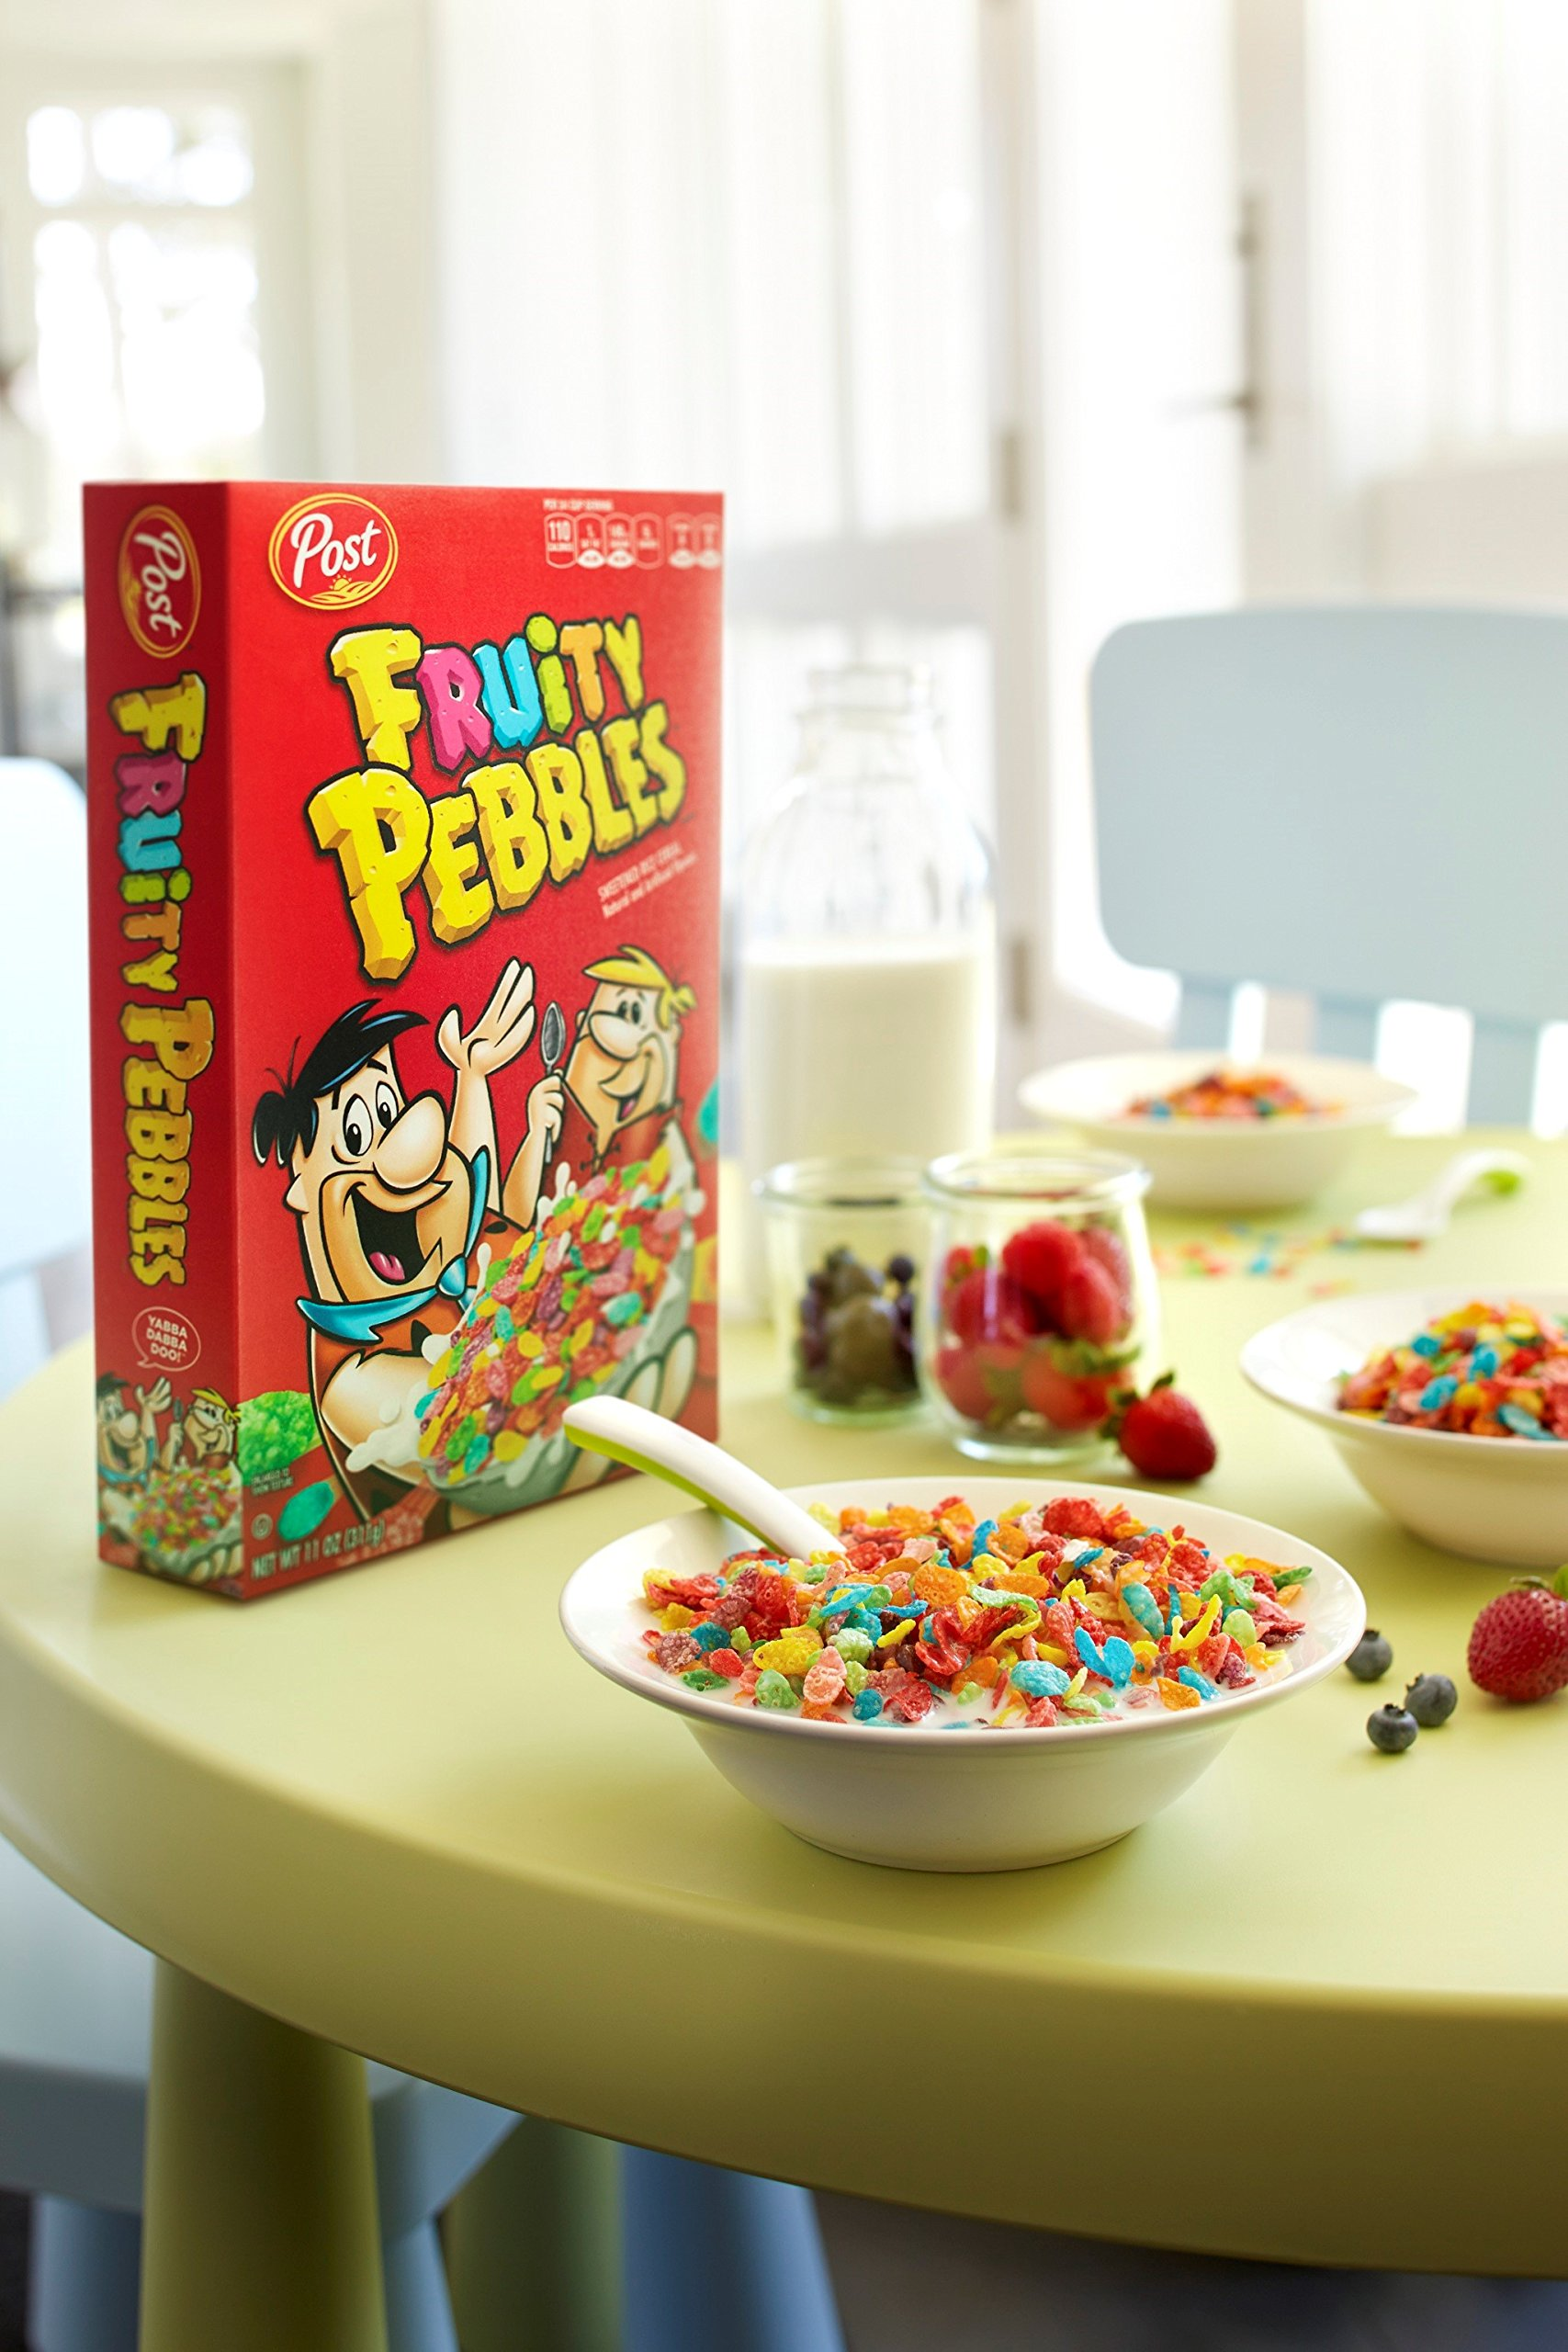 Post Fruity Pebbles Gluten Free Cereal, 11 Ounce (Pack of 12) by Post